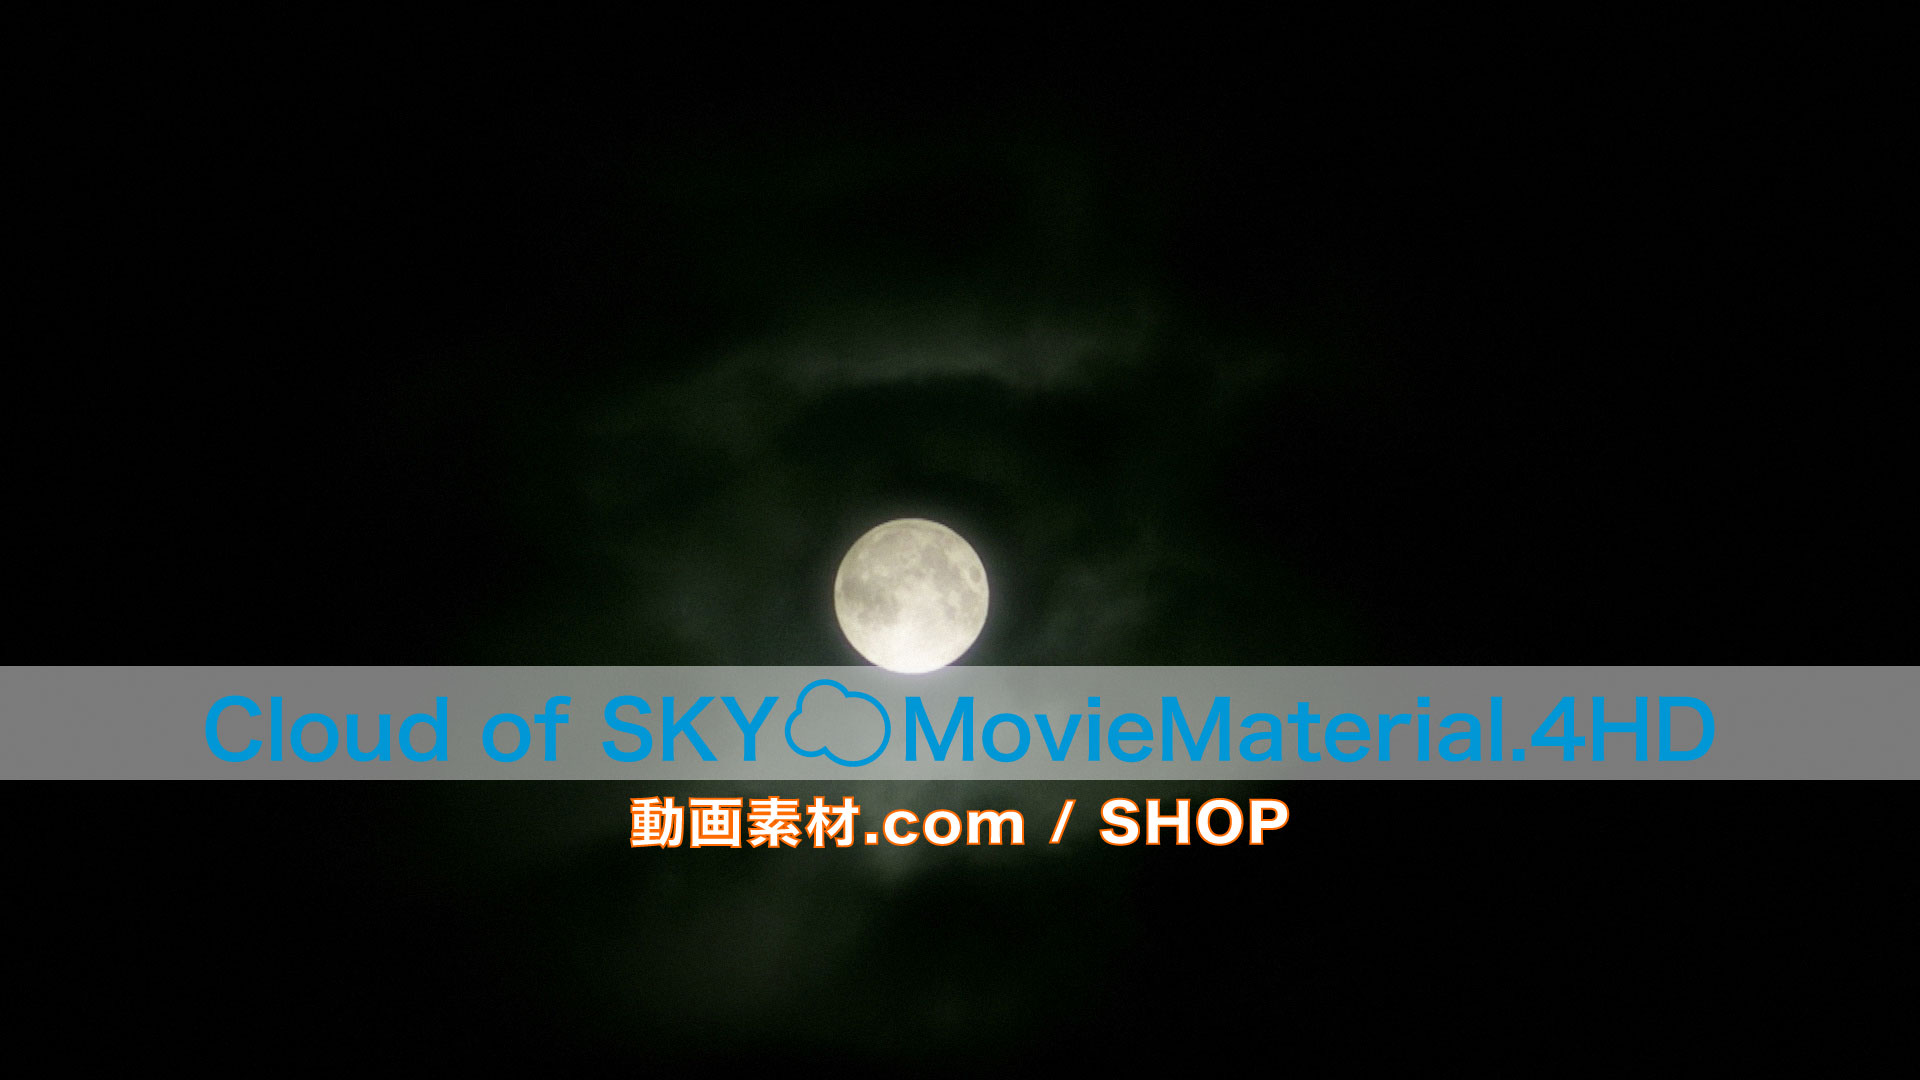 Cloud of SKY MovieMaterial.HDSET 空と雲のフルハイビジョン1920×1080p動画素材集 44クリップ収録お得なセットimage4